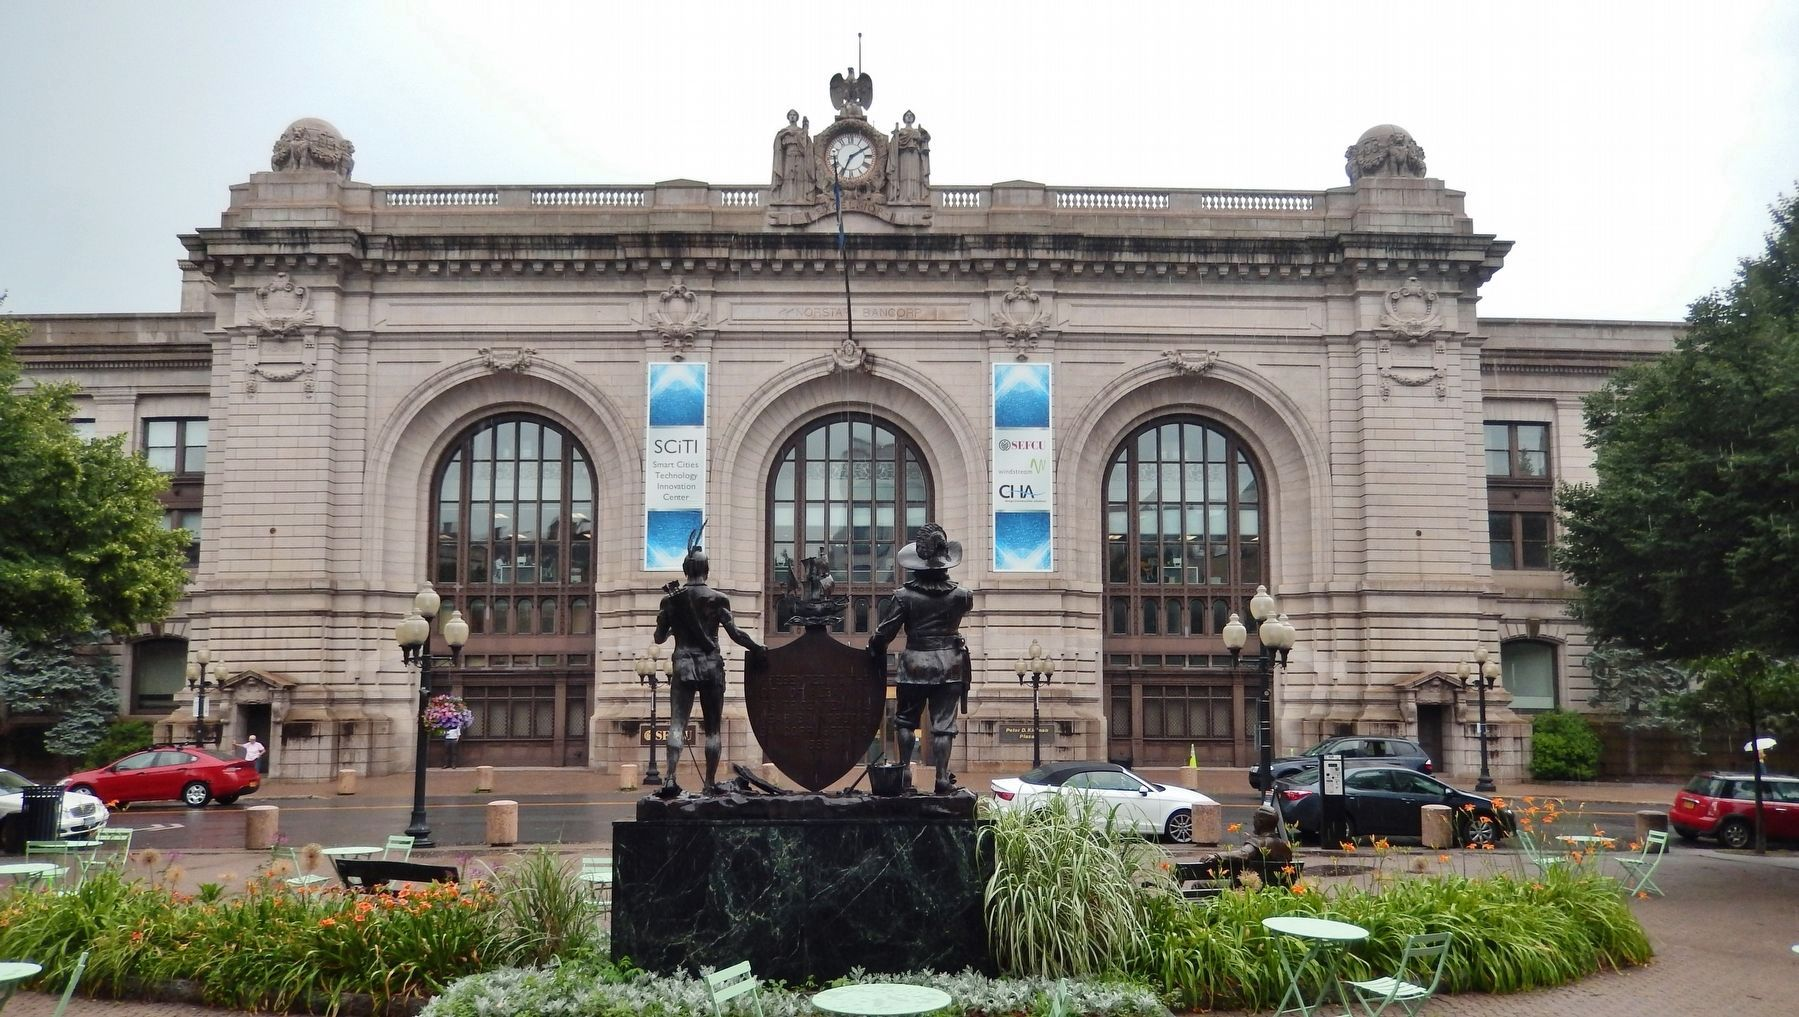 Kiernan Plaza / Union Station (<i>view from Tricentannial Square near marker</i>) image. Click for full size.